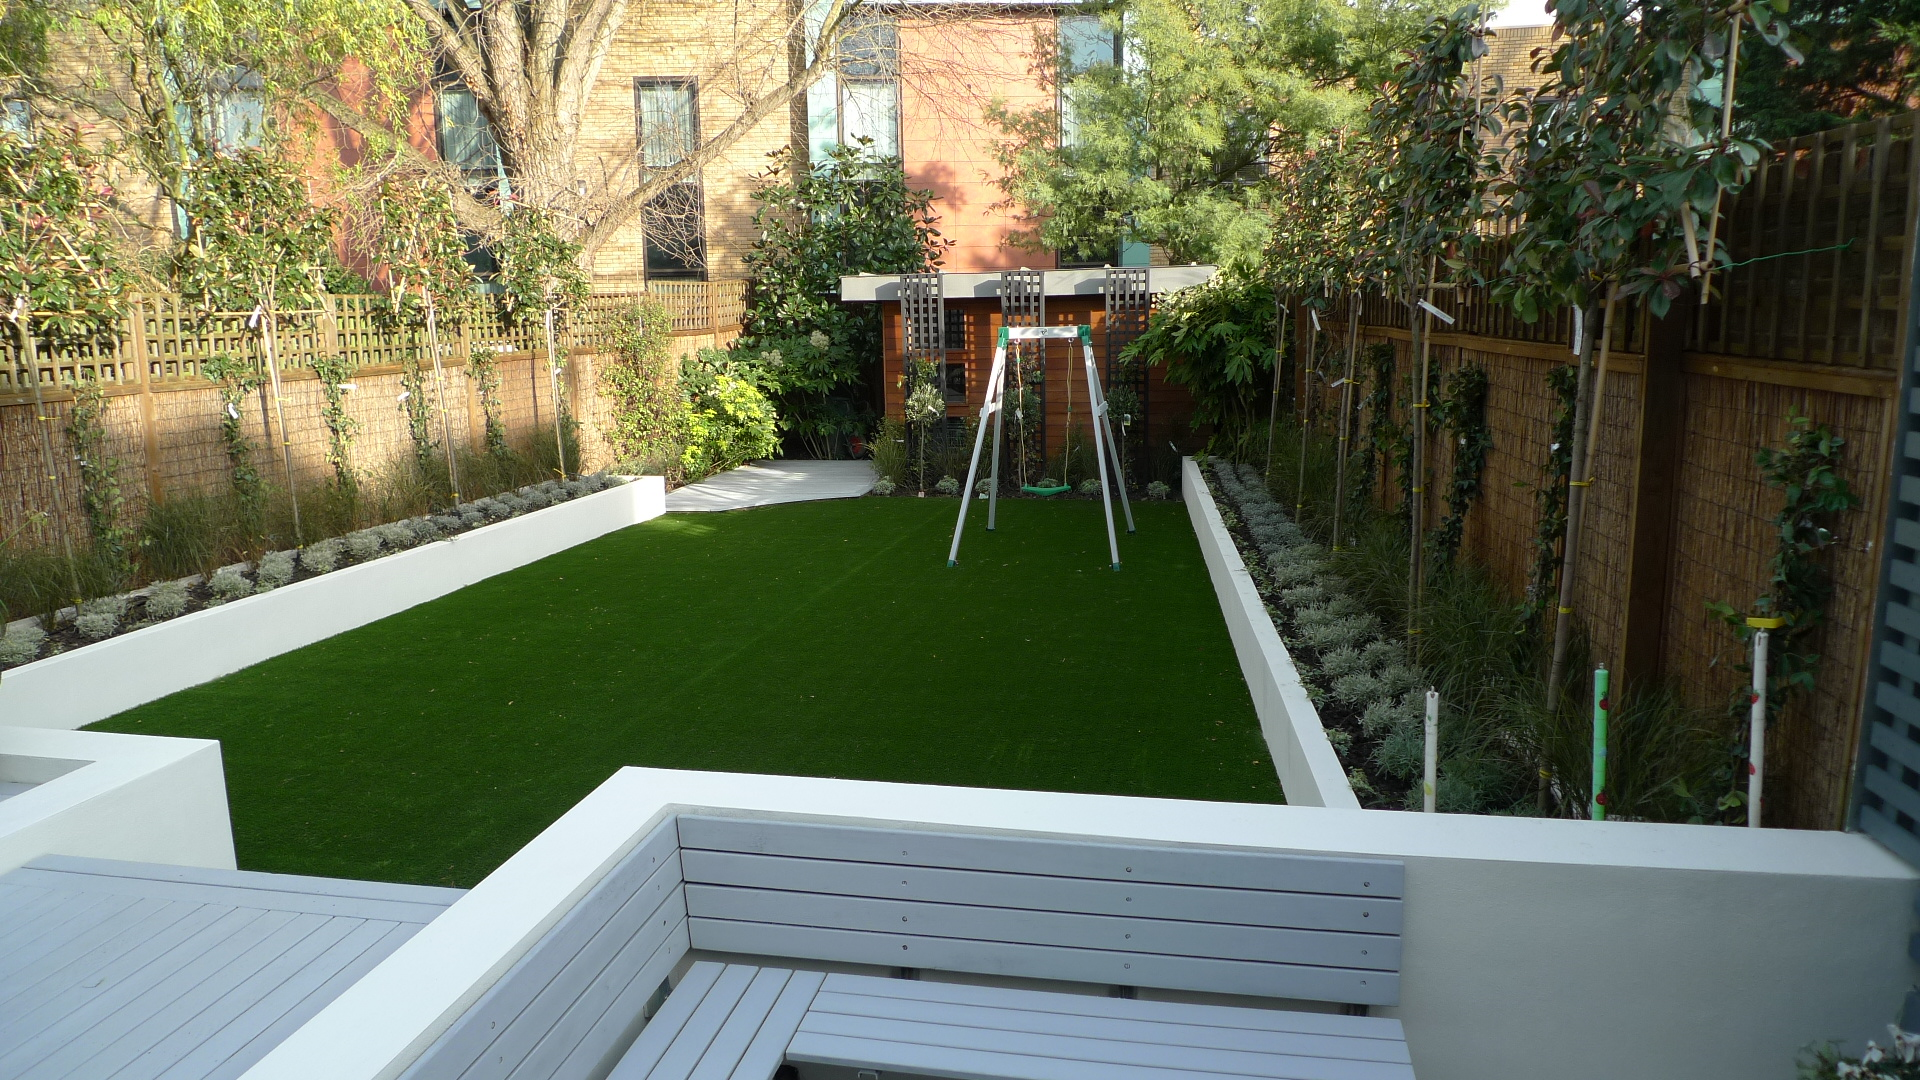 Modern garden design ideas london london garden design for Contemporary garden design ideas